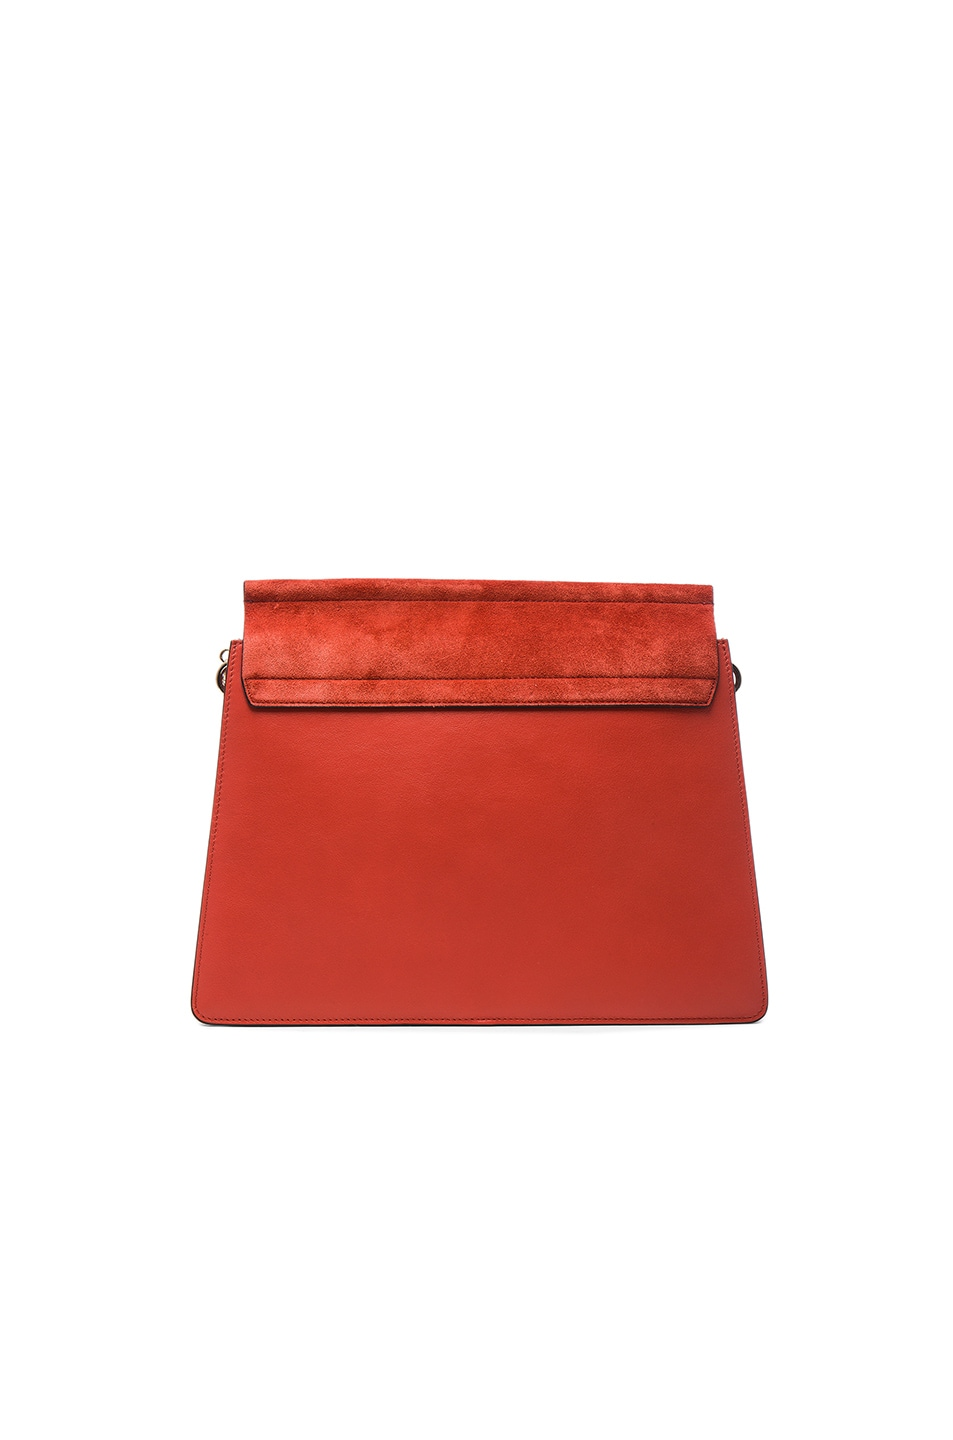 Image 2 of Chloe Medium Leather Faye Shoulder Bag in Sepia Red